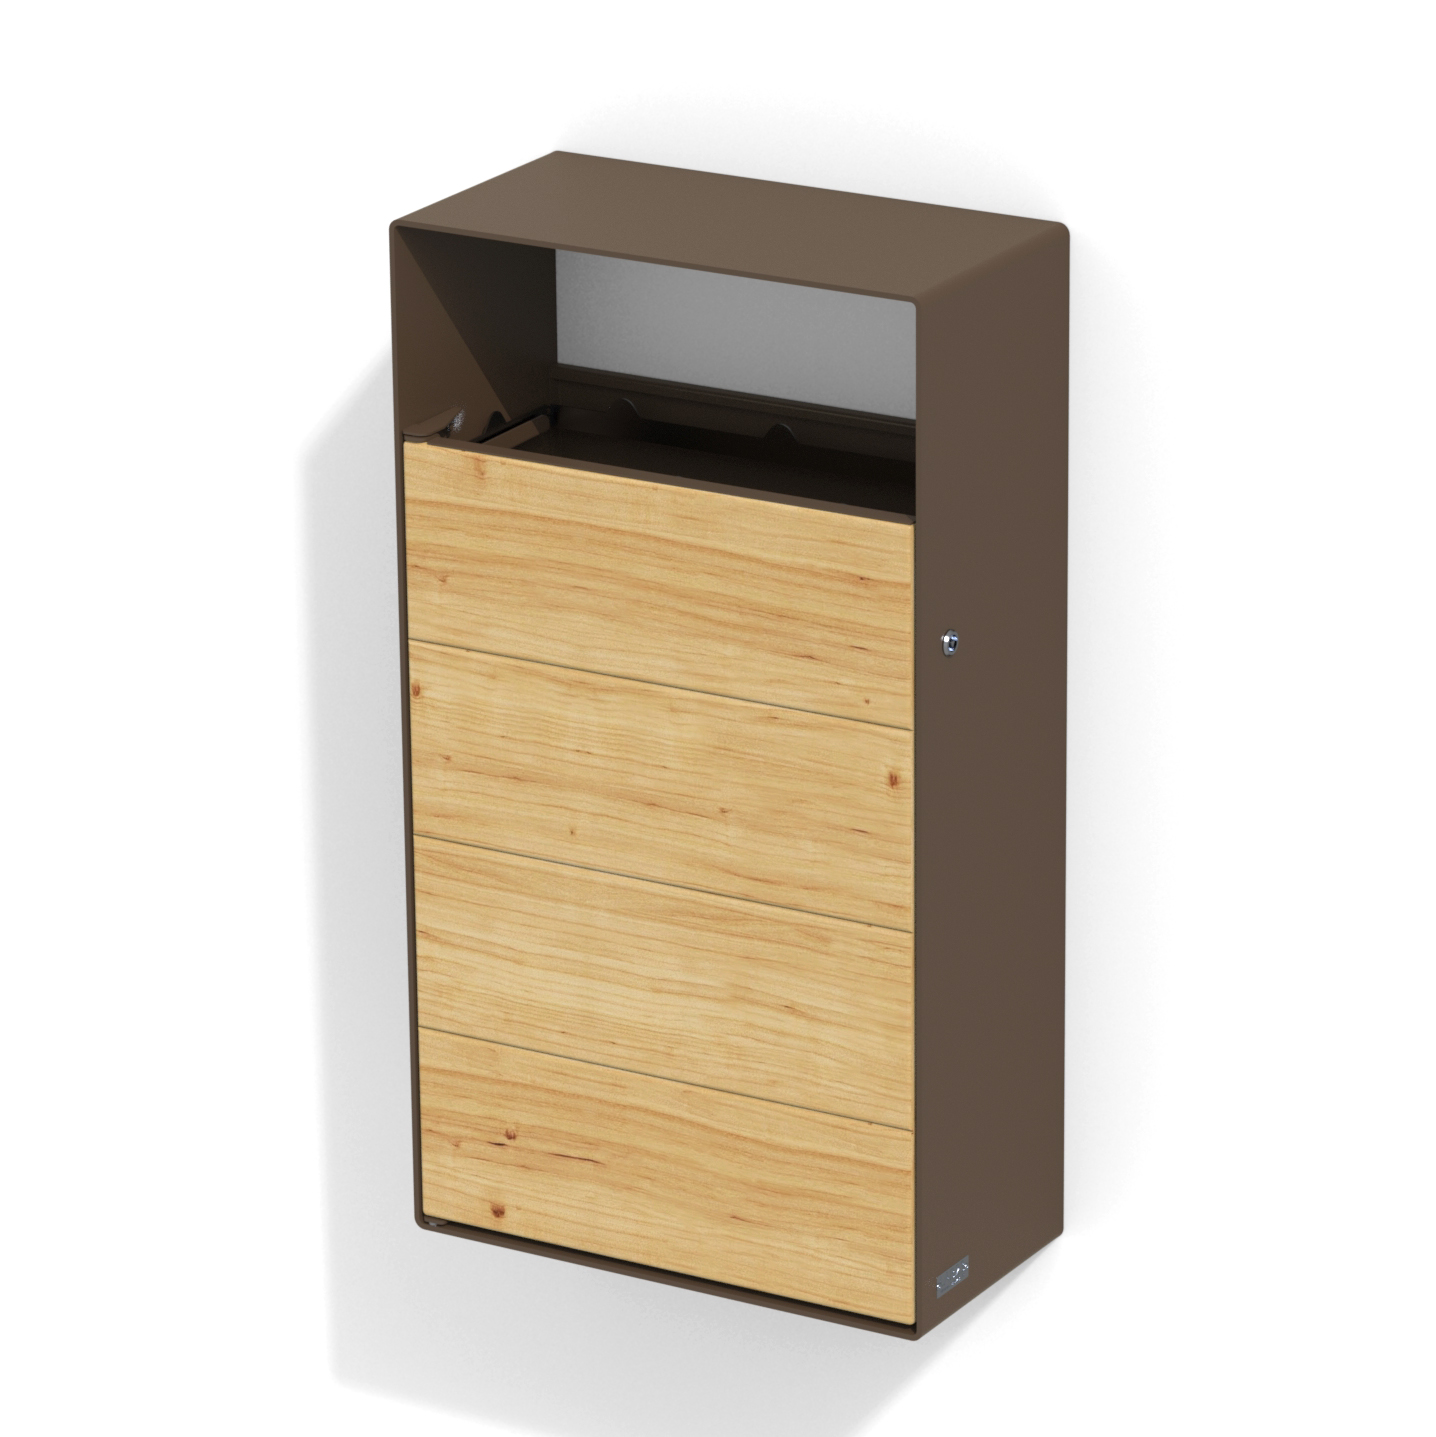 street furniture wall litter bin in wood-steel LAB23